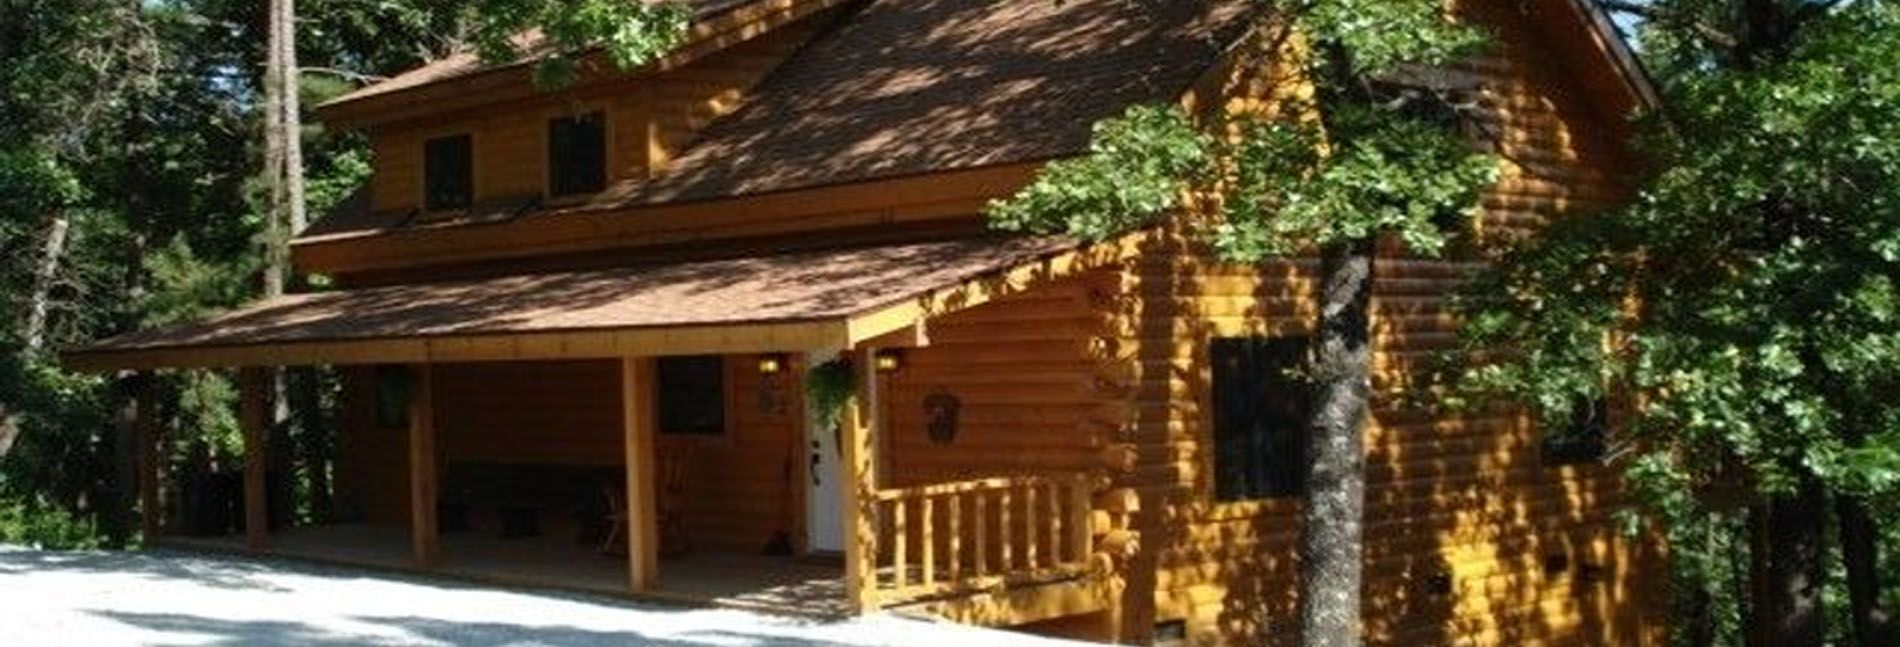 Pine Ridge Log Cabins Offer Cabins To Rent In Table Rock Lake Mo And All The Modern Amenities The Luxury Vacation Rentals Luxury Log Cabins Log Cabin Rentals